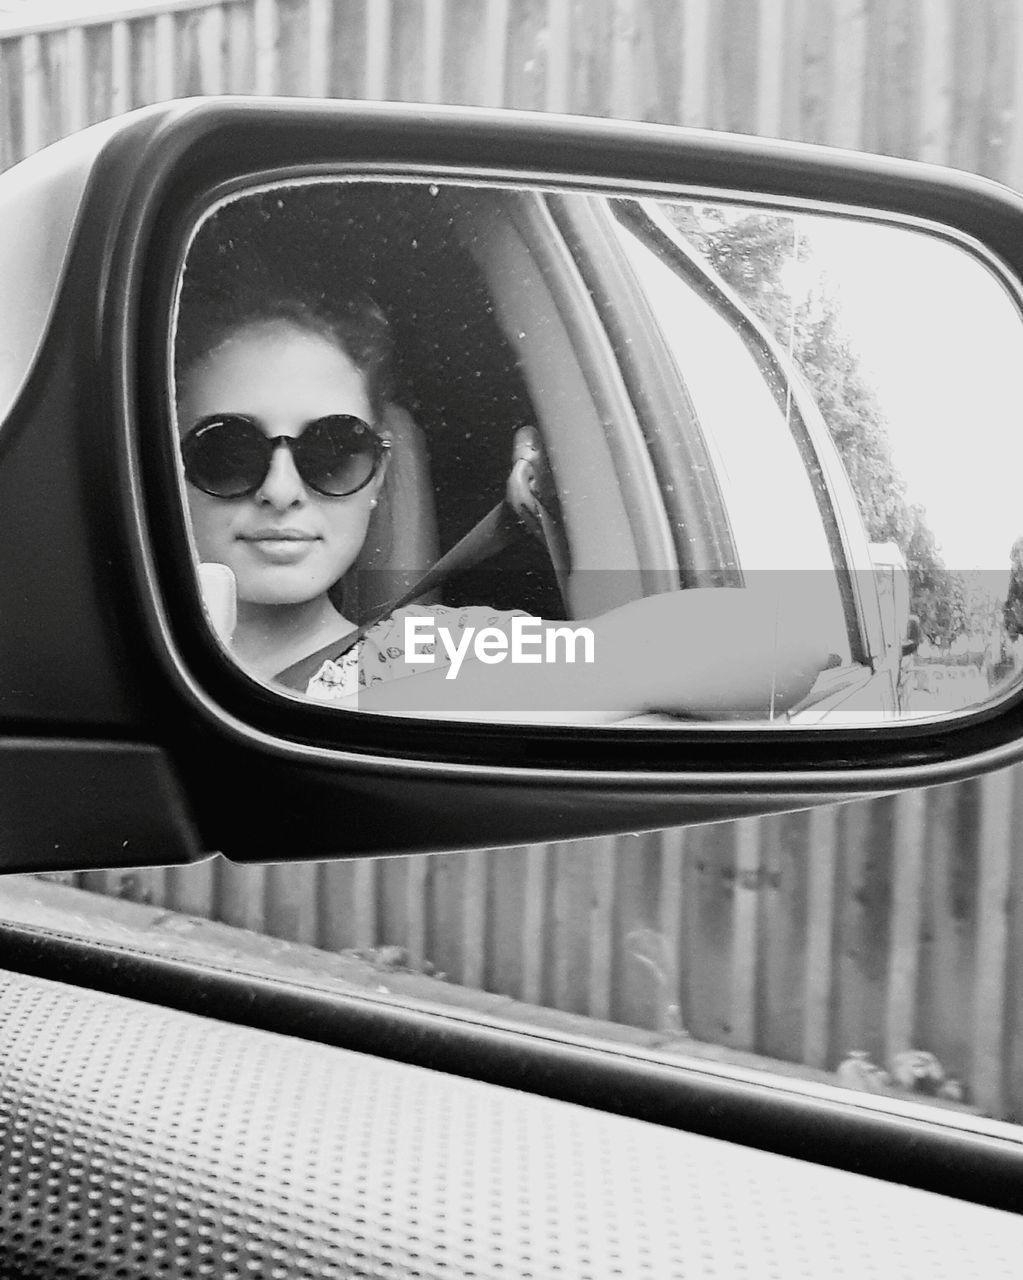 Portrait Of Young Woman Wearing Sunglasses Reflecting On Car Side-View Mirror